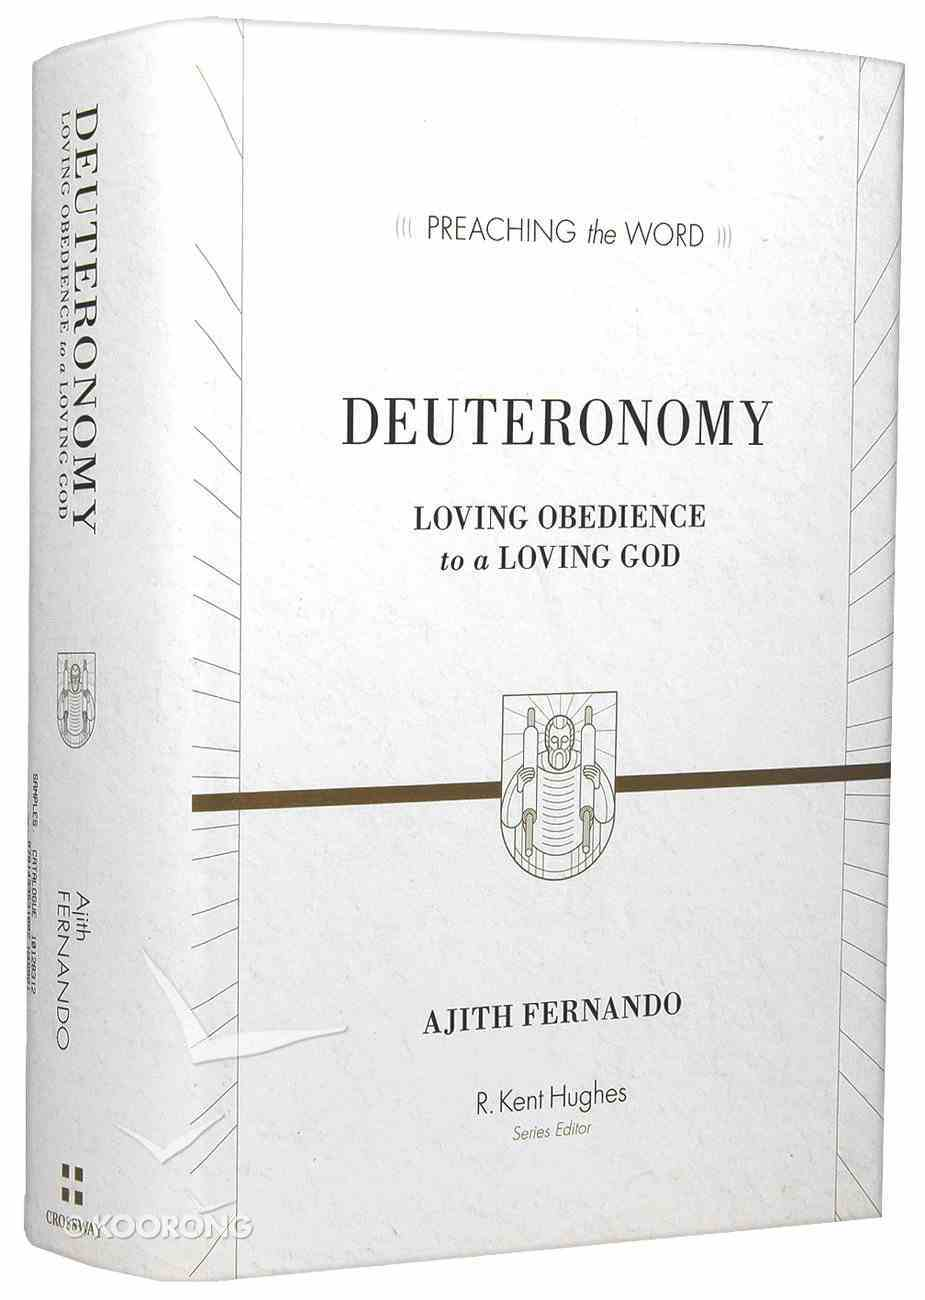 Deuteronomy - Loving Obedience to a Loving God (Preaching The Word Series) Hardback